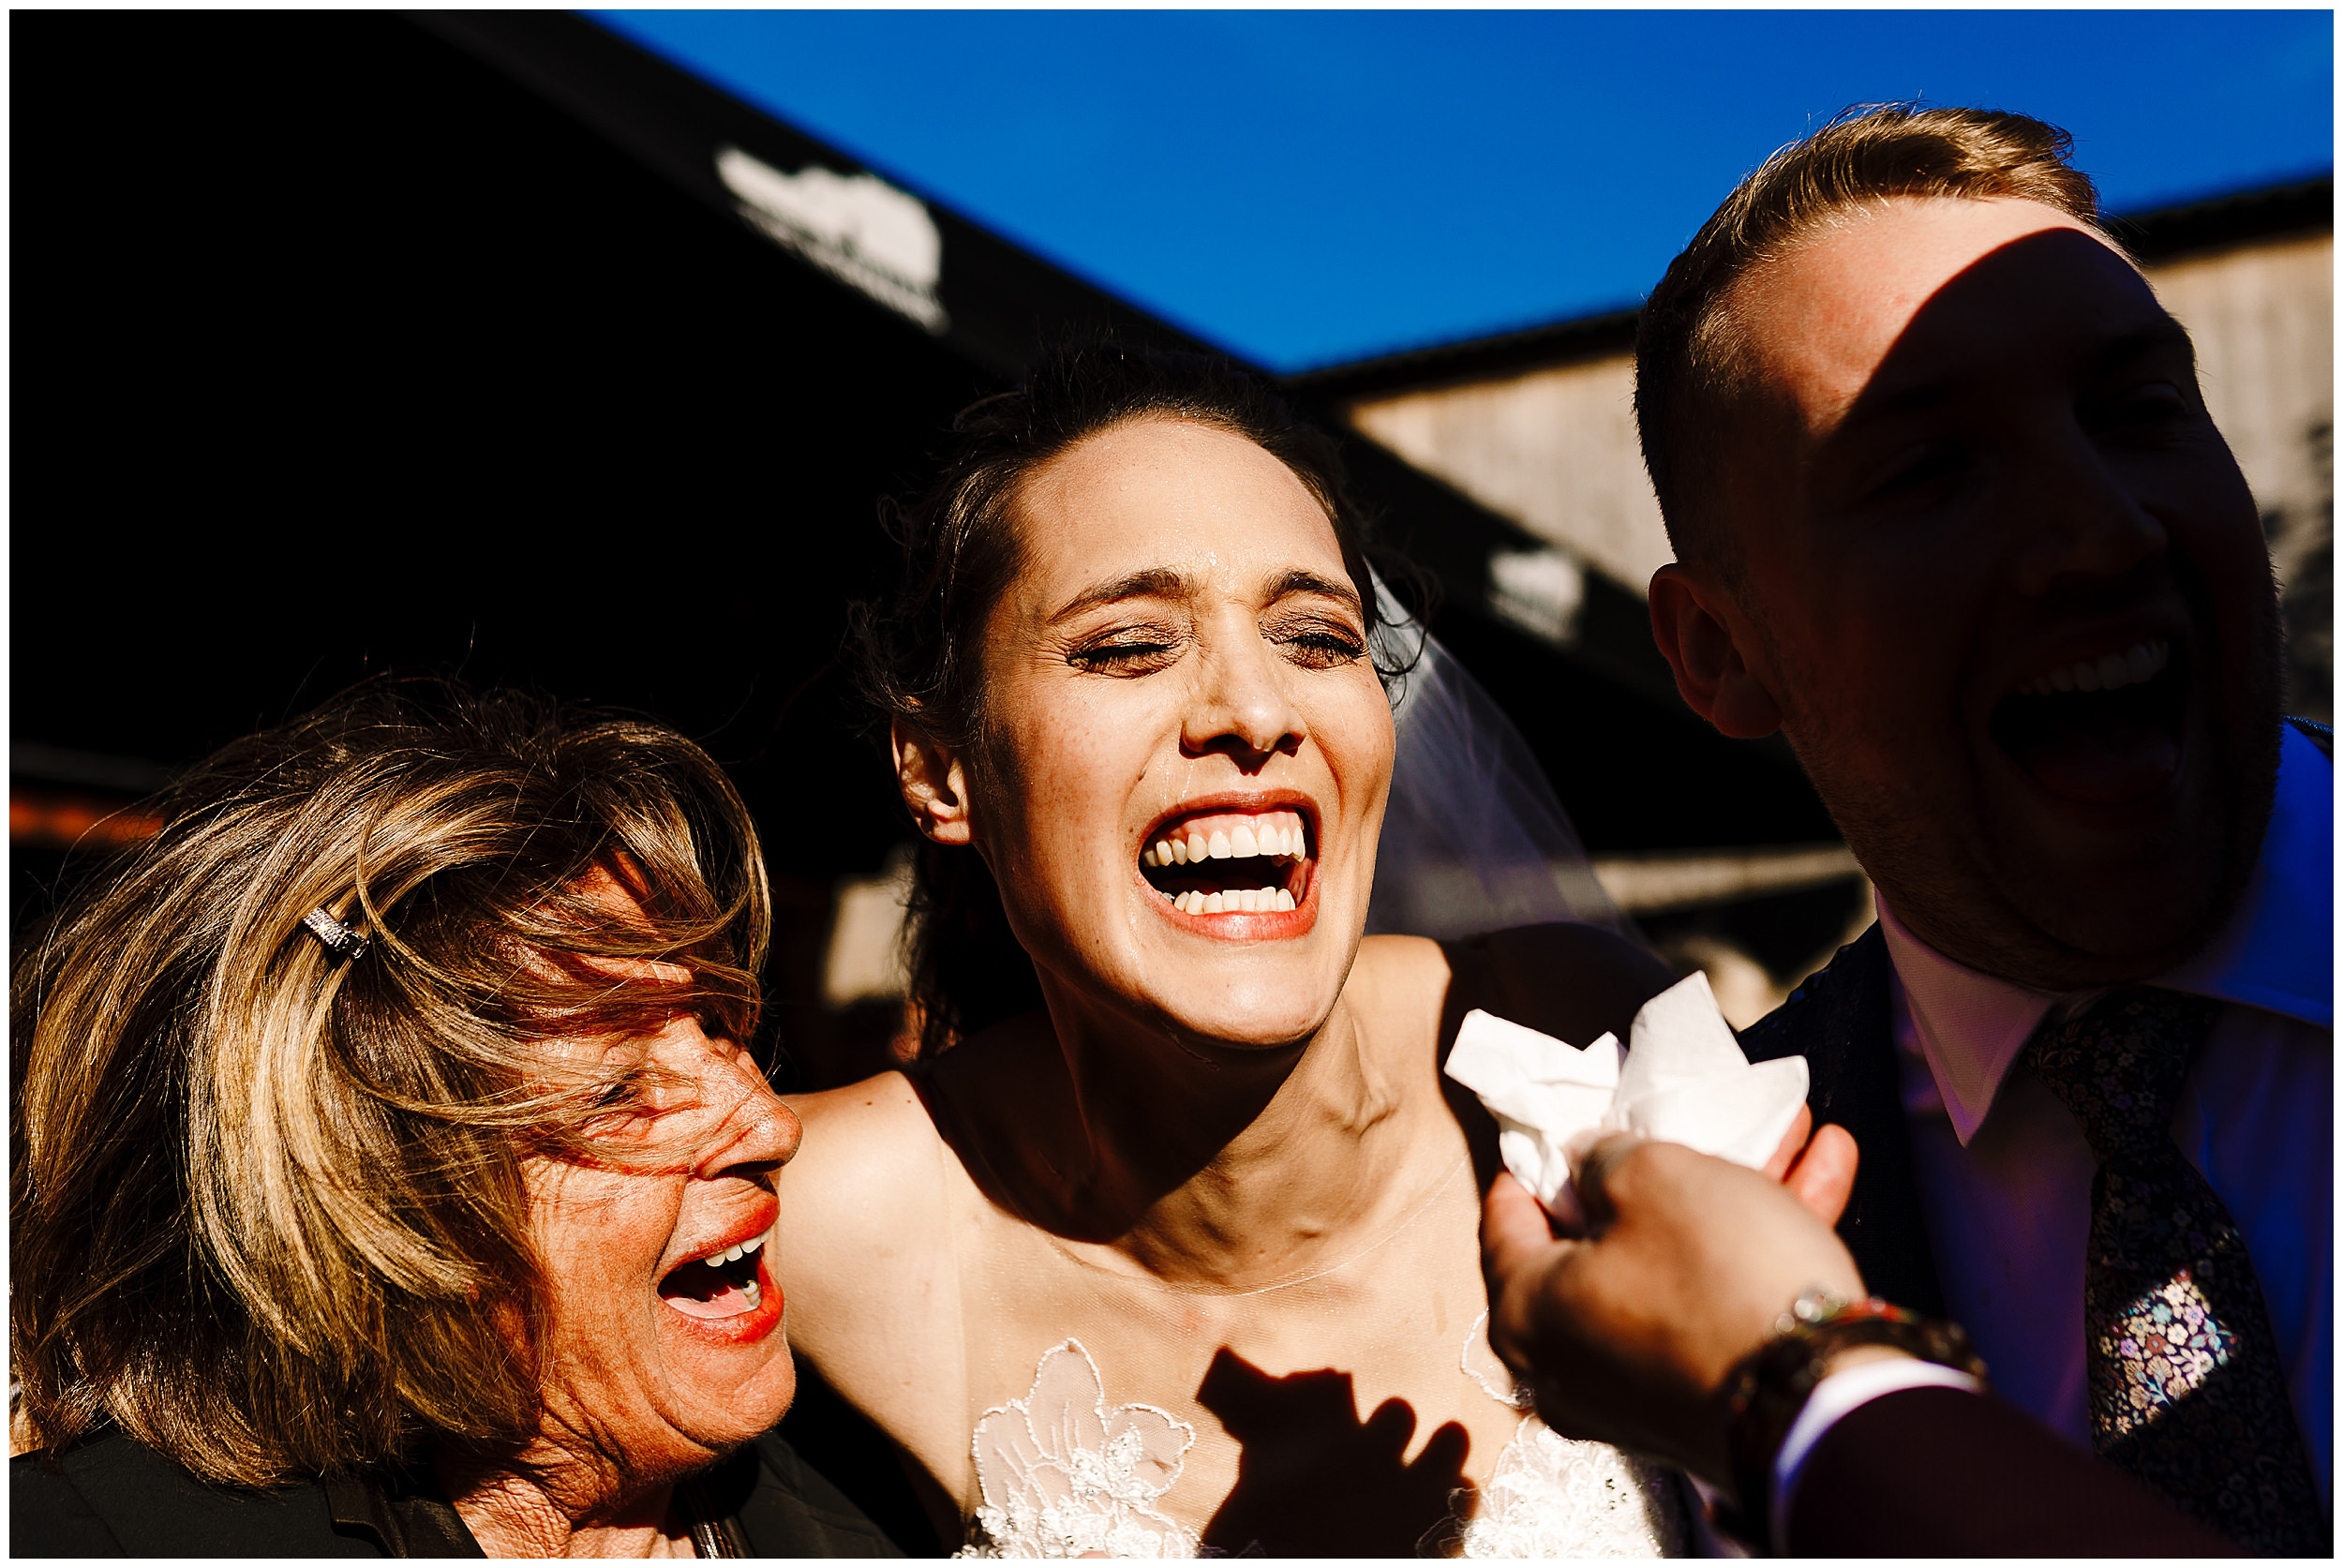 A guest offering a laughing bride a tissue after a drink sprayed all over her face